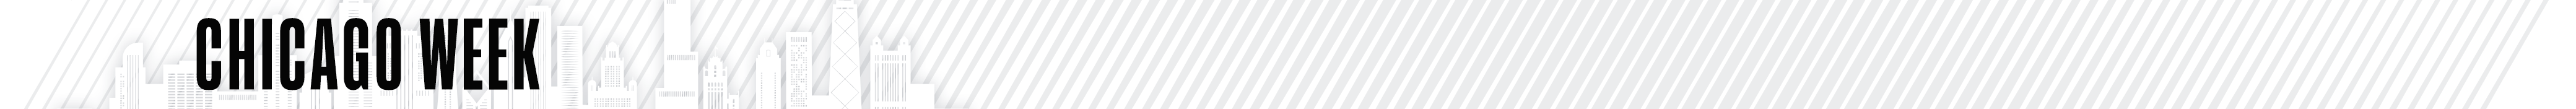 Chicago Week